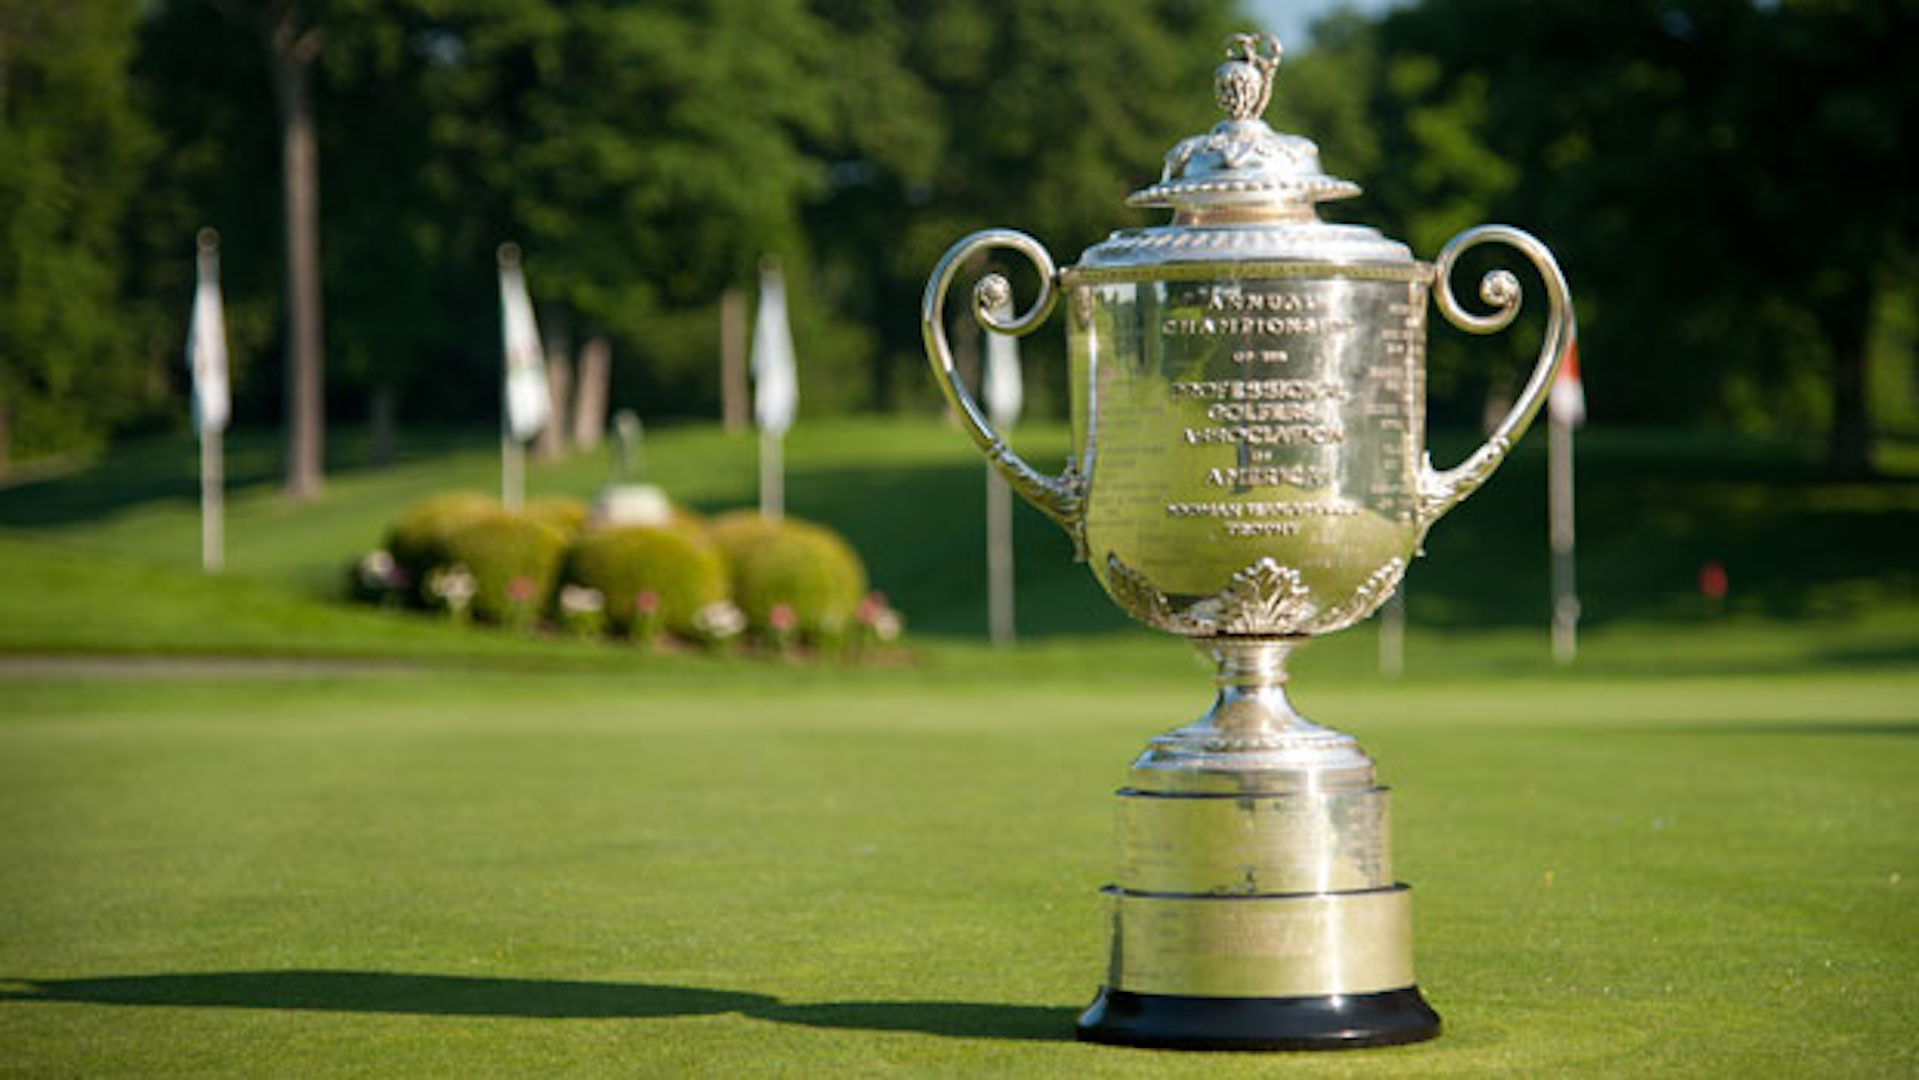 Sky Sports loses USPGA Championship coverage